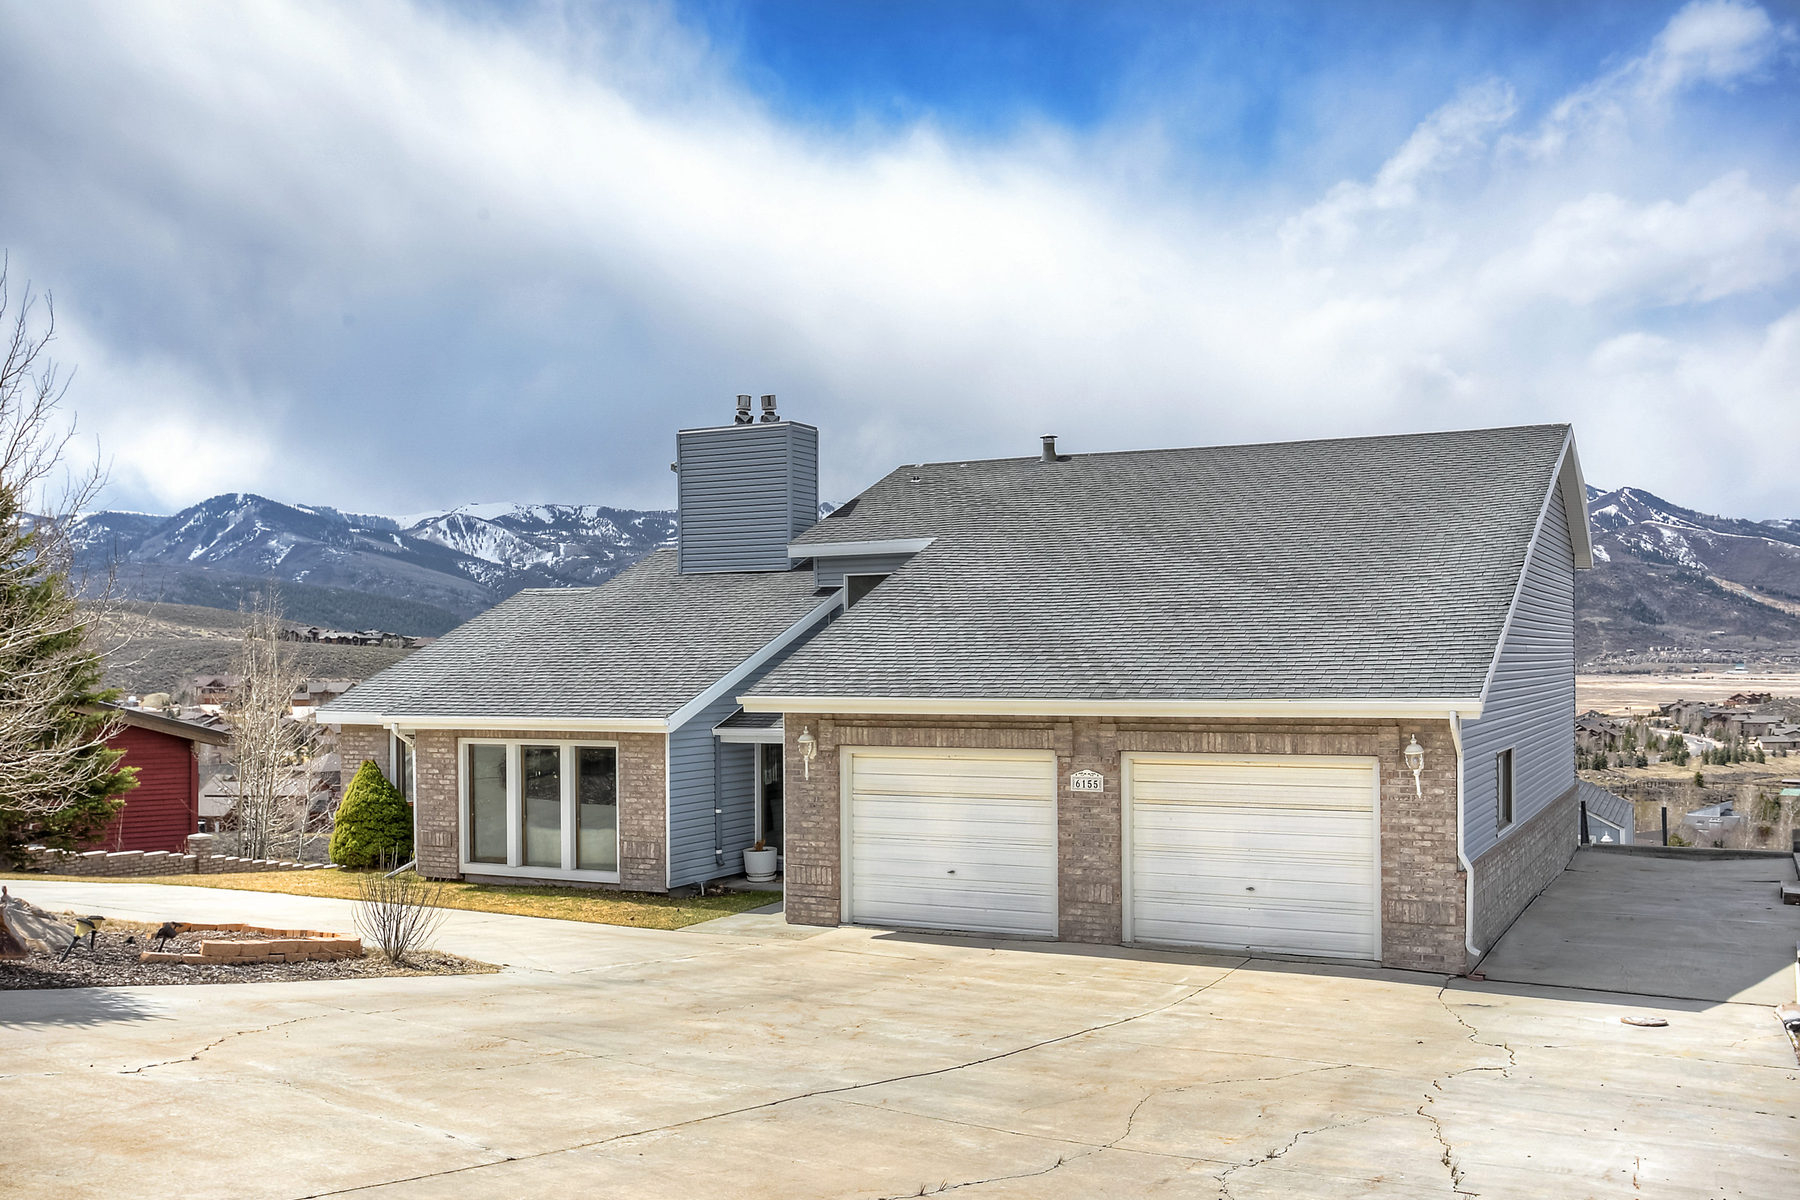 Single Family Home for Sale at Spacious Home, Sweeping Views 6155 N Mountain View Dr Lot #303-A Park City, Utah 84098 United States